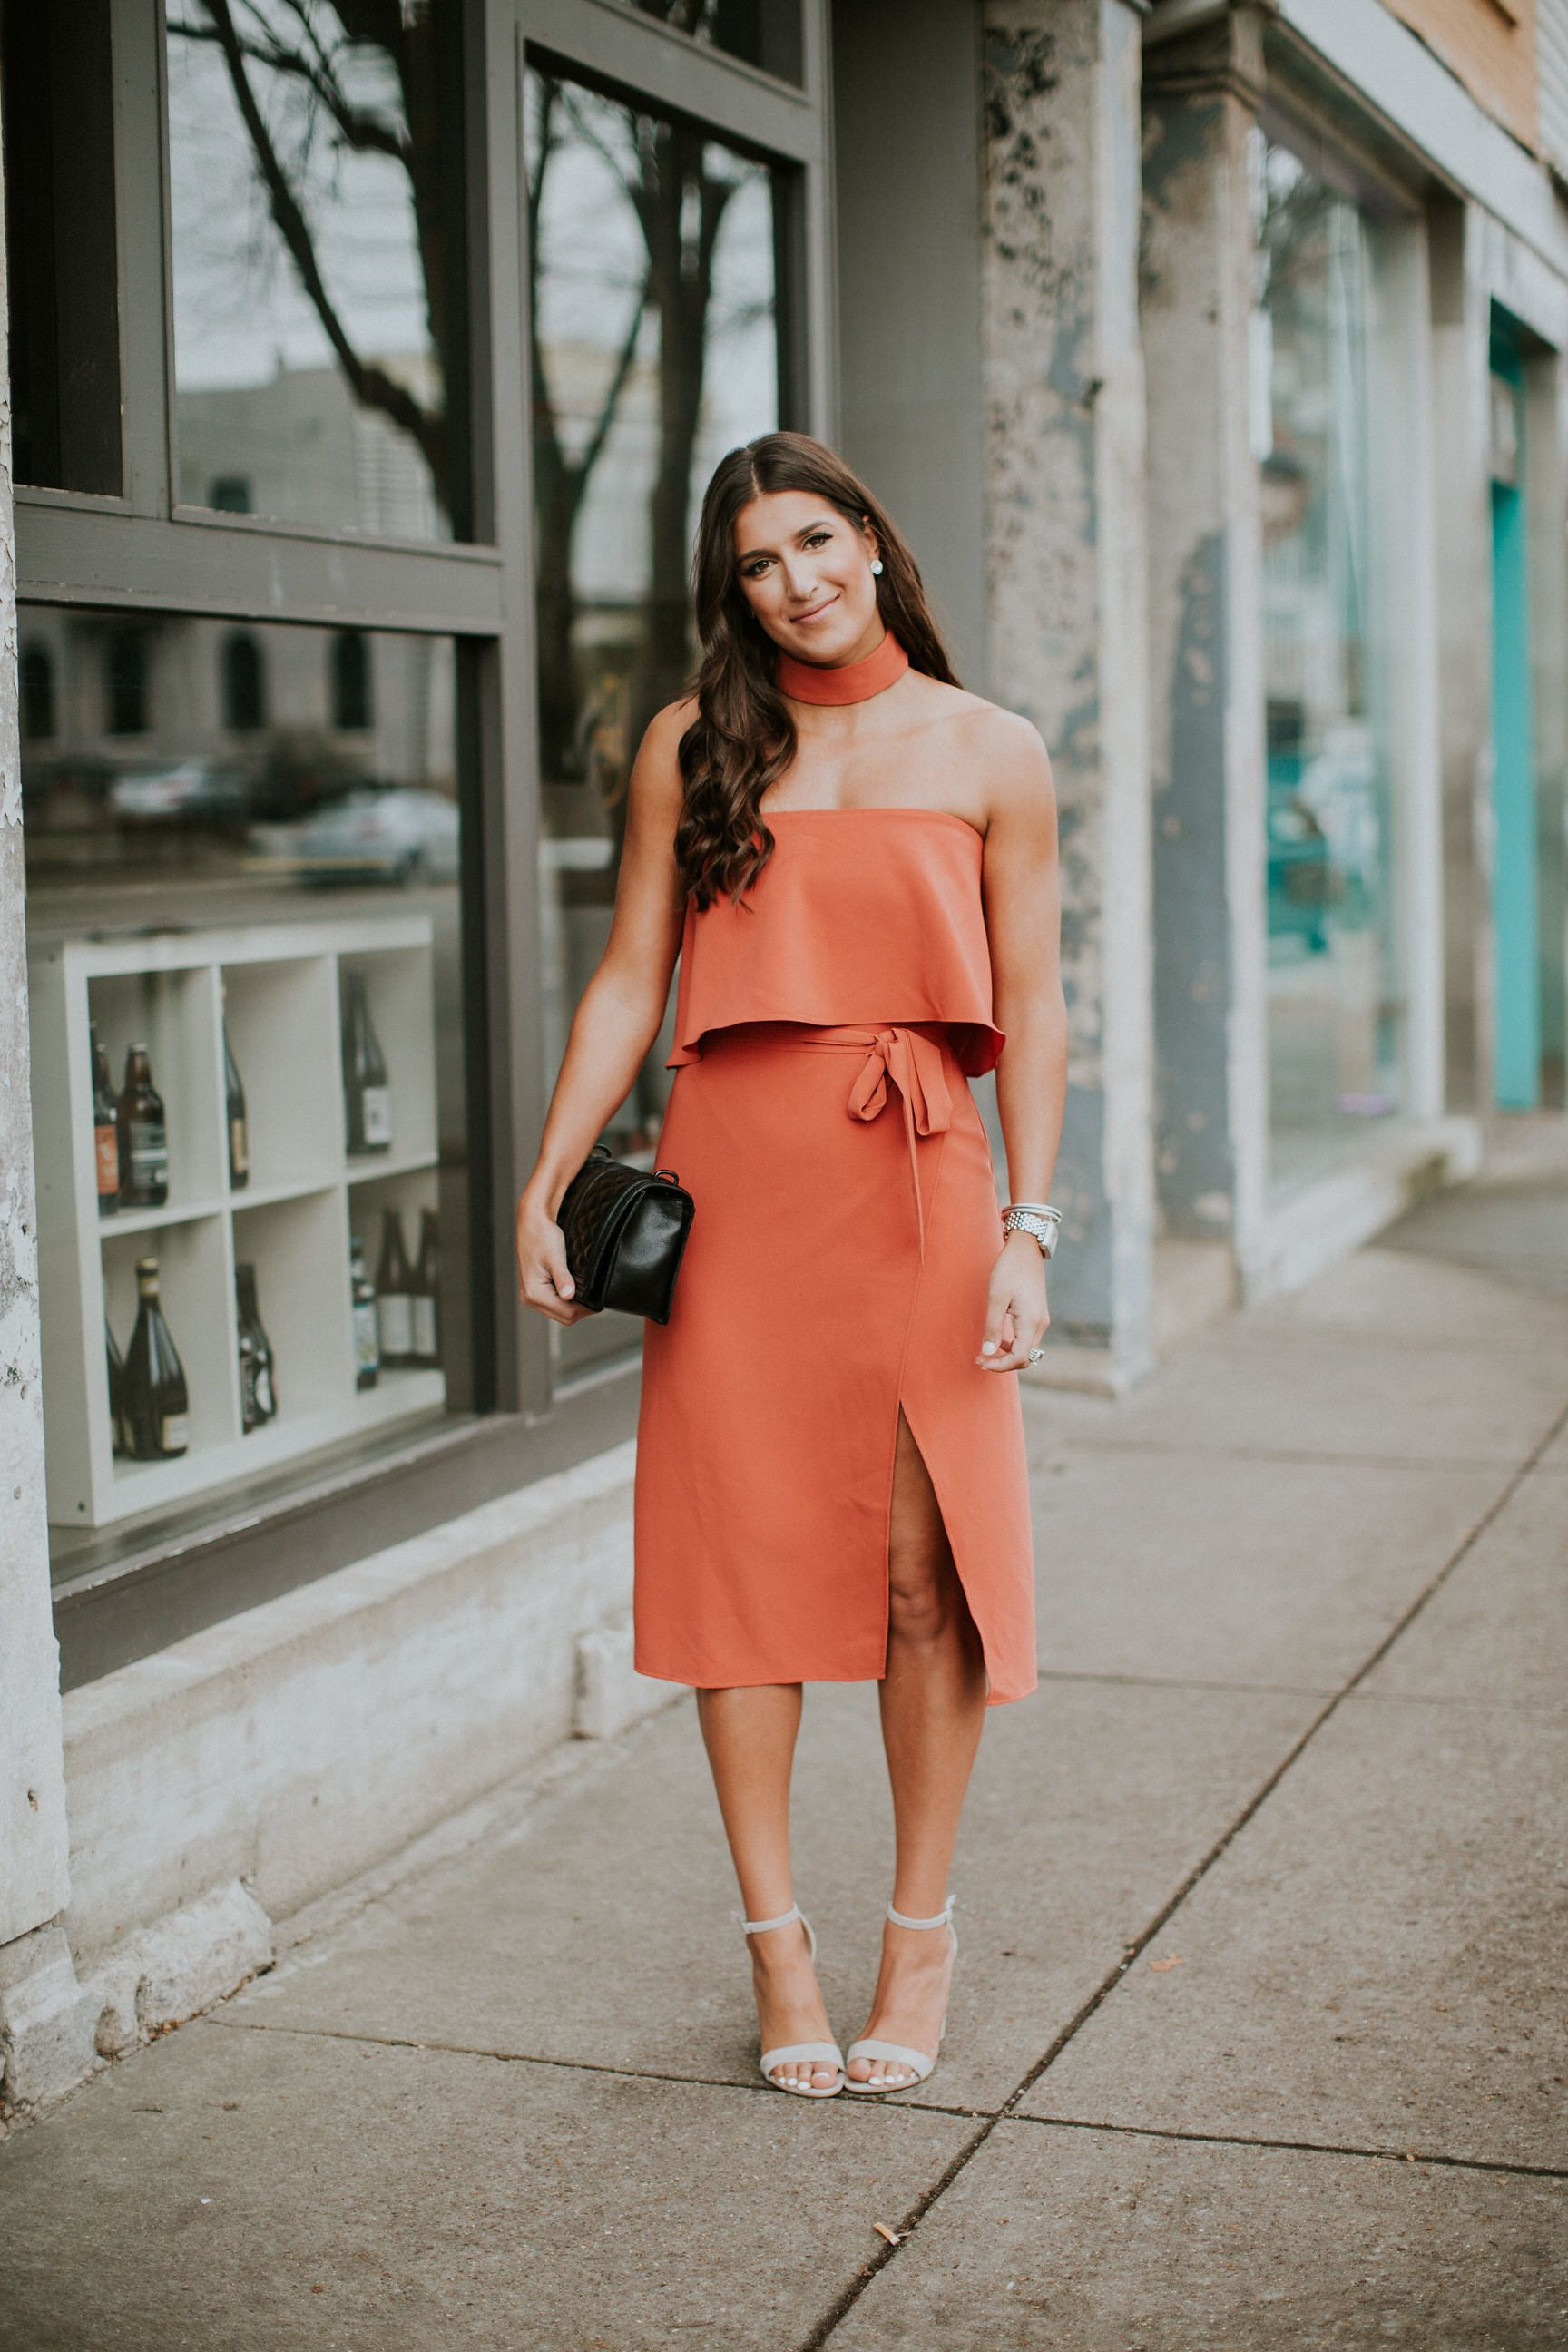 Strapless Cocktail Dress A Southern Drawl In 2021 Strapless Cocktail Dresses Dresses Orange Wedding Guest Dresses [ 2592 x 1728 Pixel ]